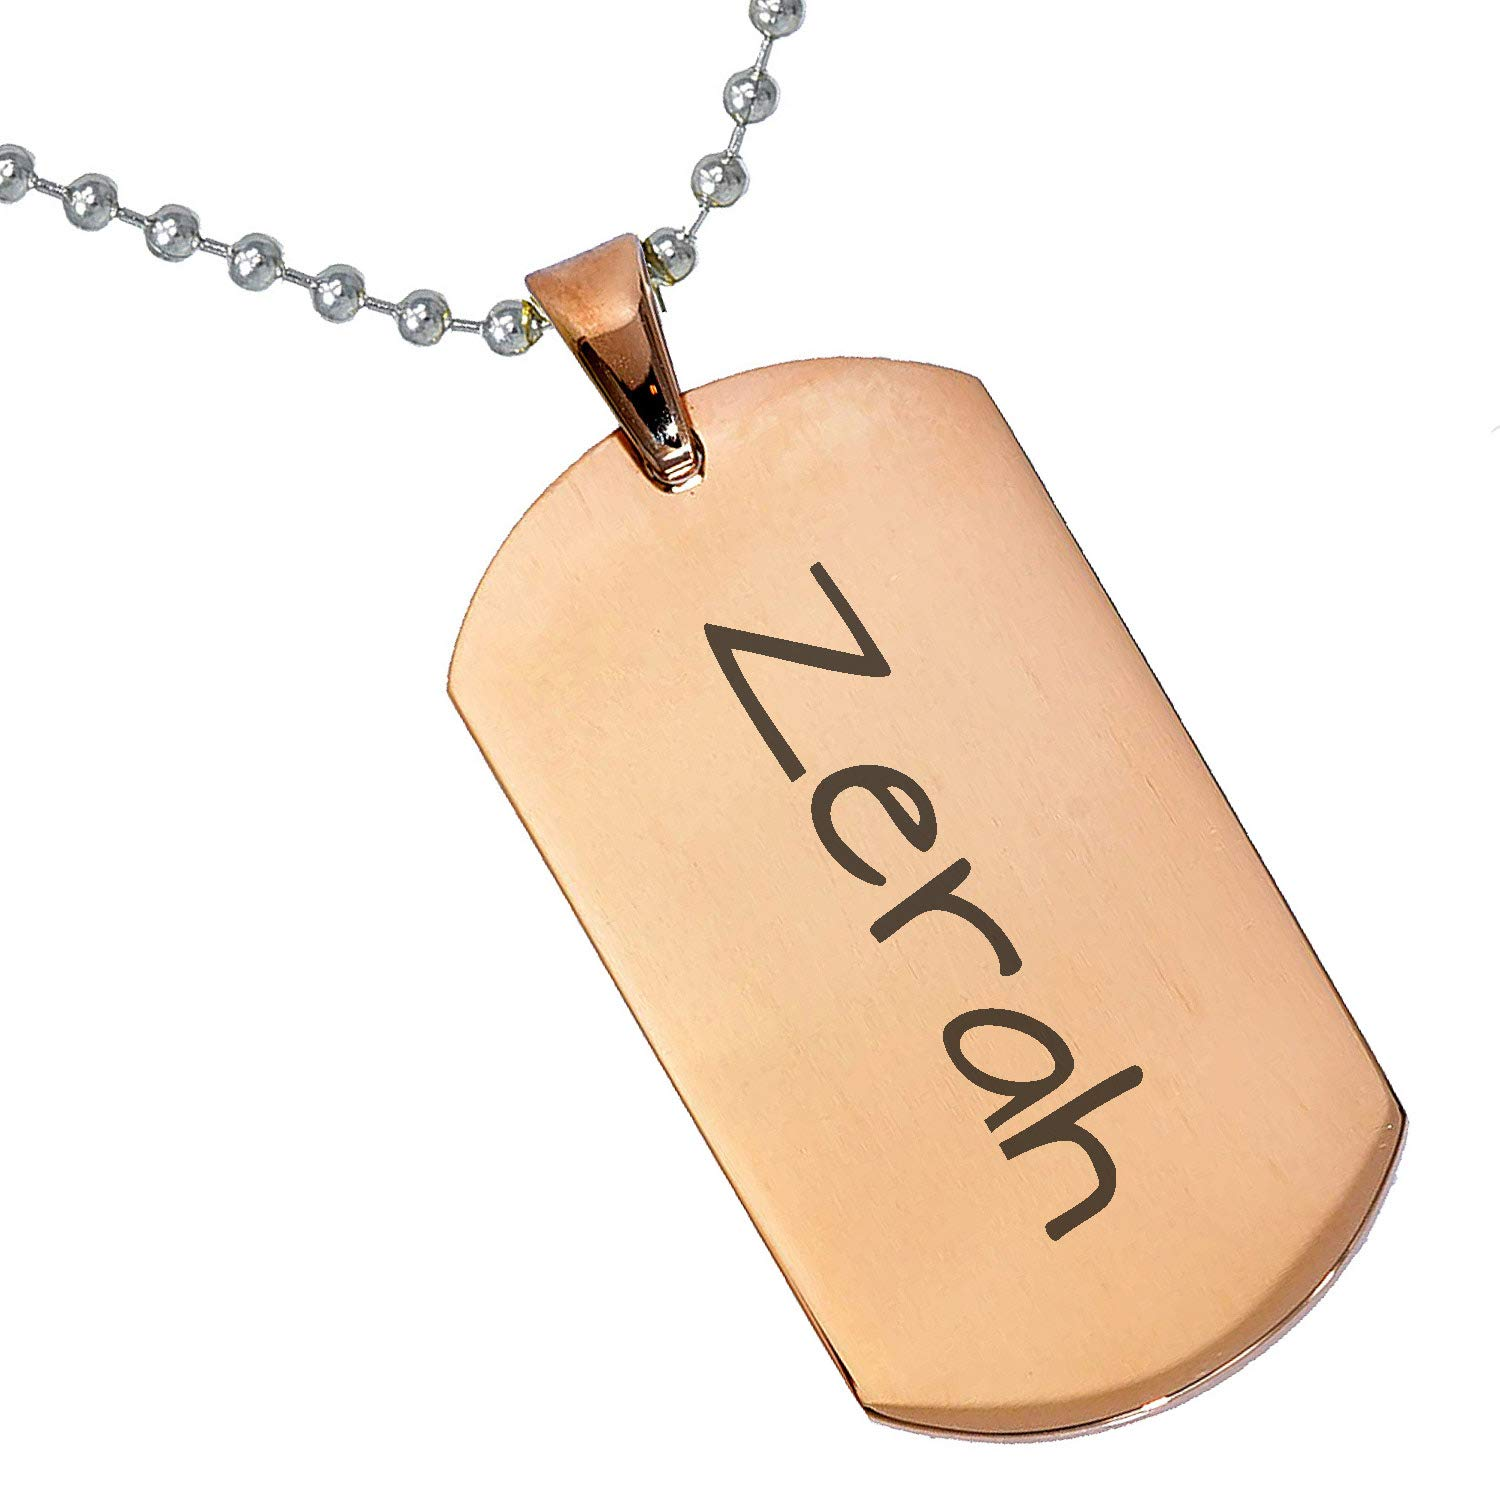 Stainless Steel Silver Gold Black Rose Gold Color Baby Name Zerah Engraved Personalized Gifts For Son Daughter Boyfriend Girlfriend Initial Customizable Pendant Necklace Dog Tags 24 Ball Chain